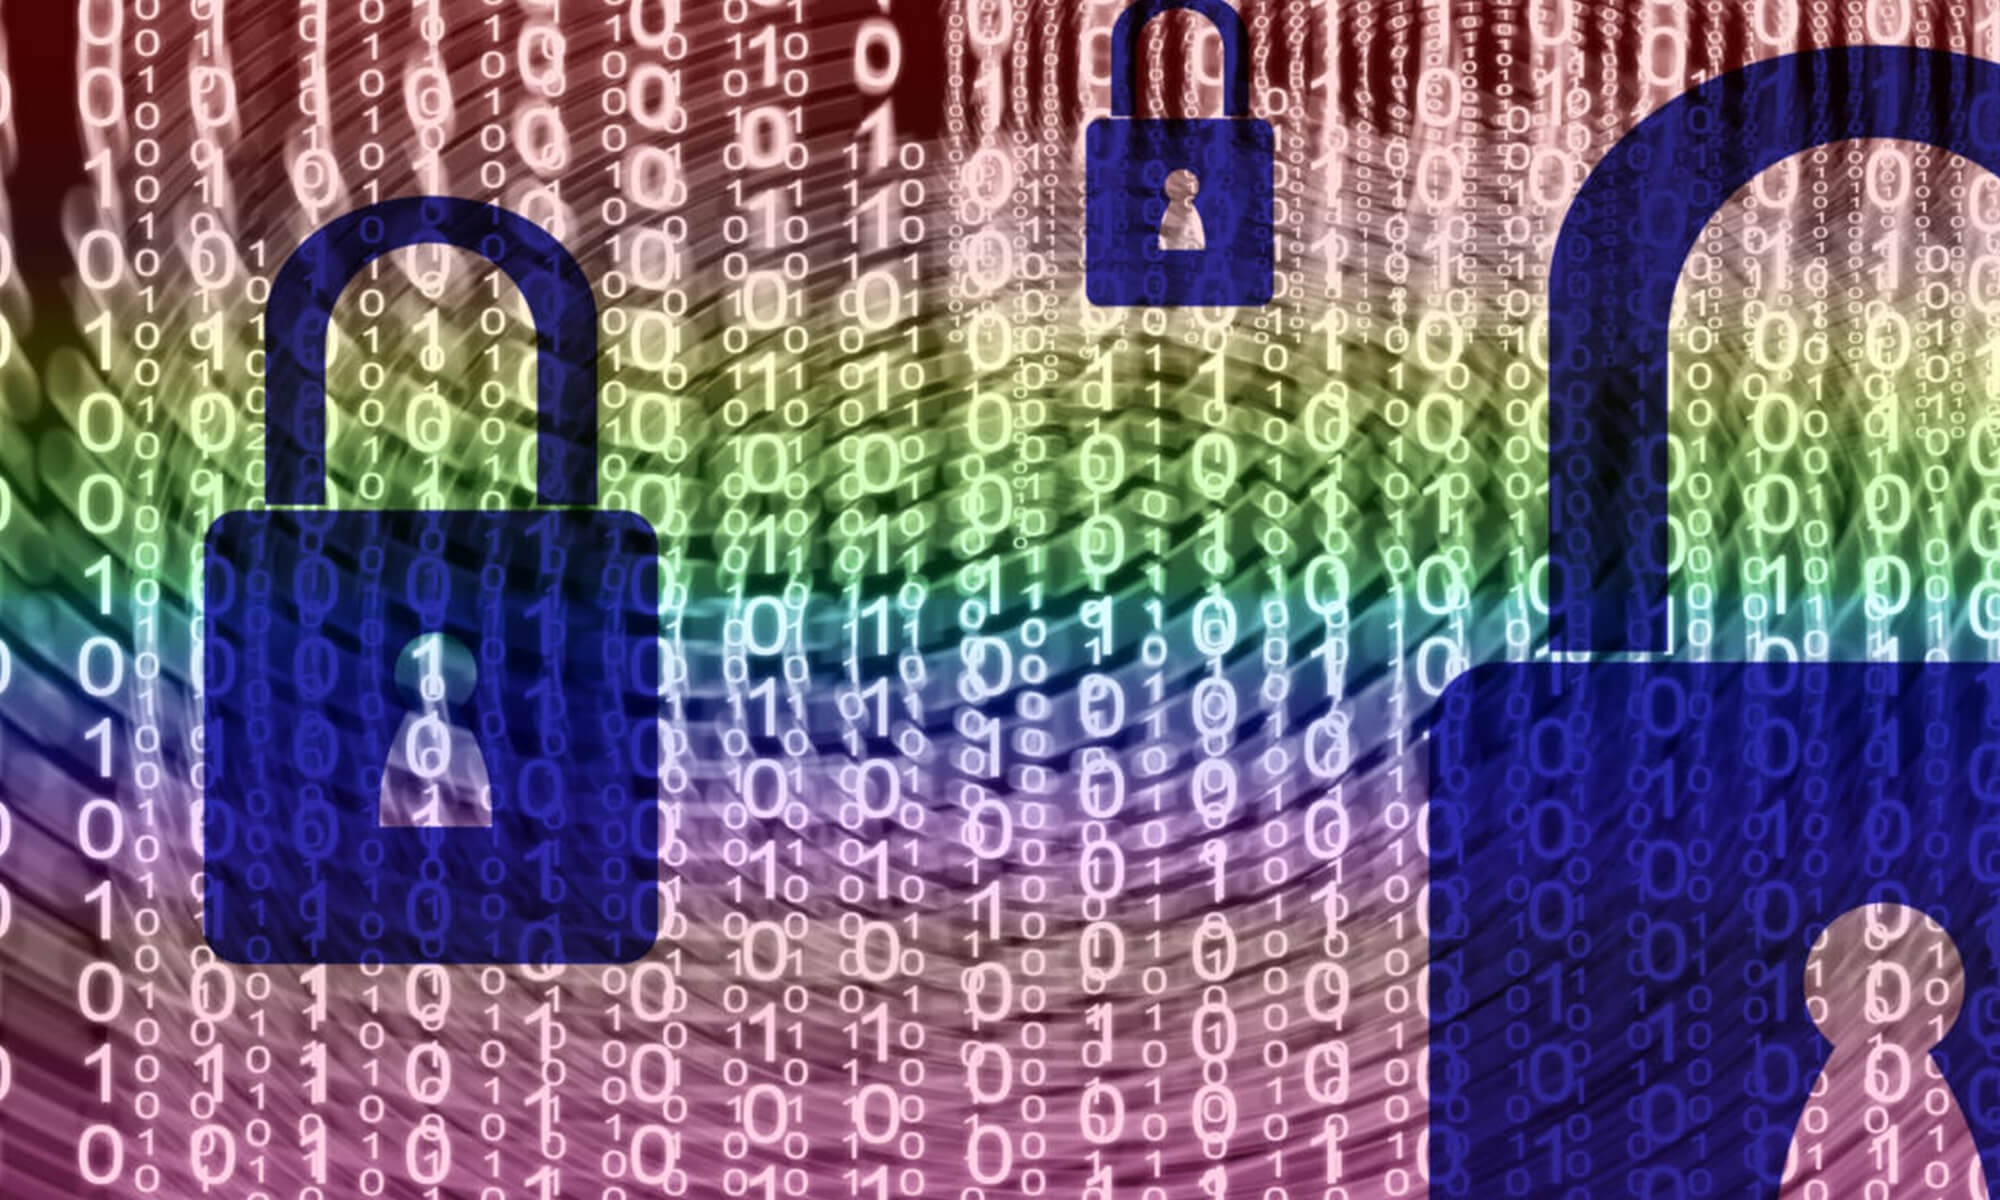 CSO | Take a new approach to data security: protect all of it